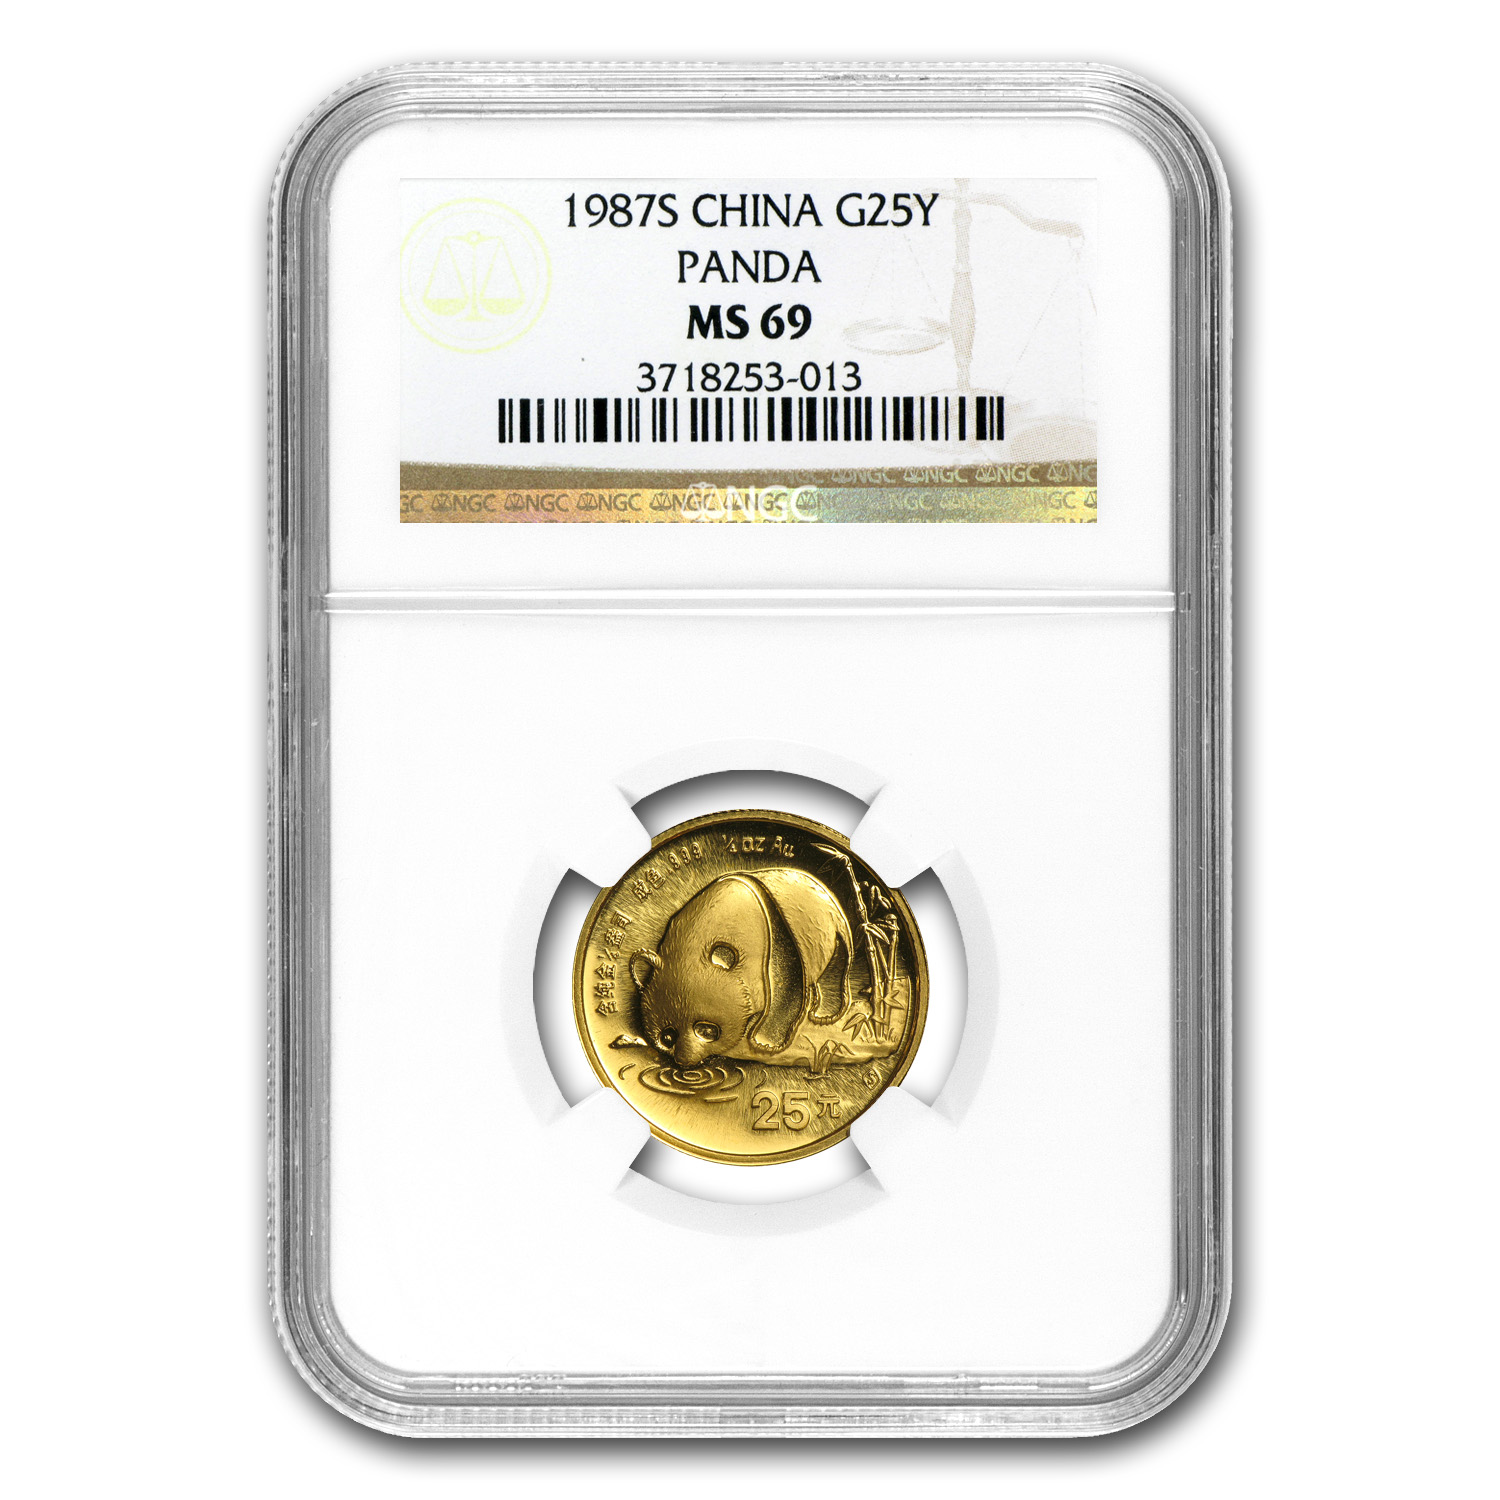 1987-S (1/4 oz) Gold Chinese Pandas - MS-69 NGC